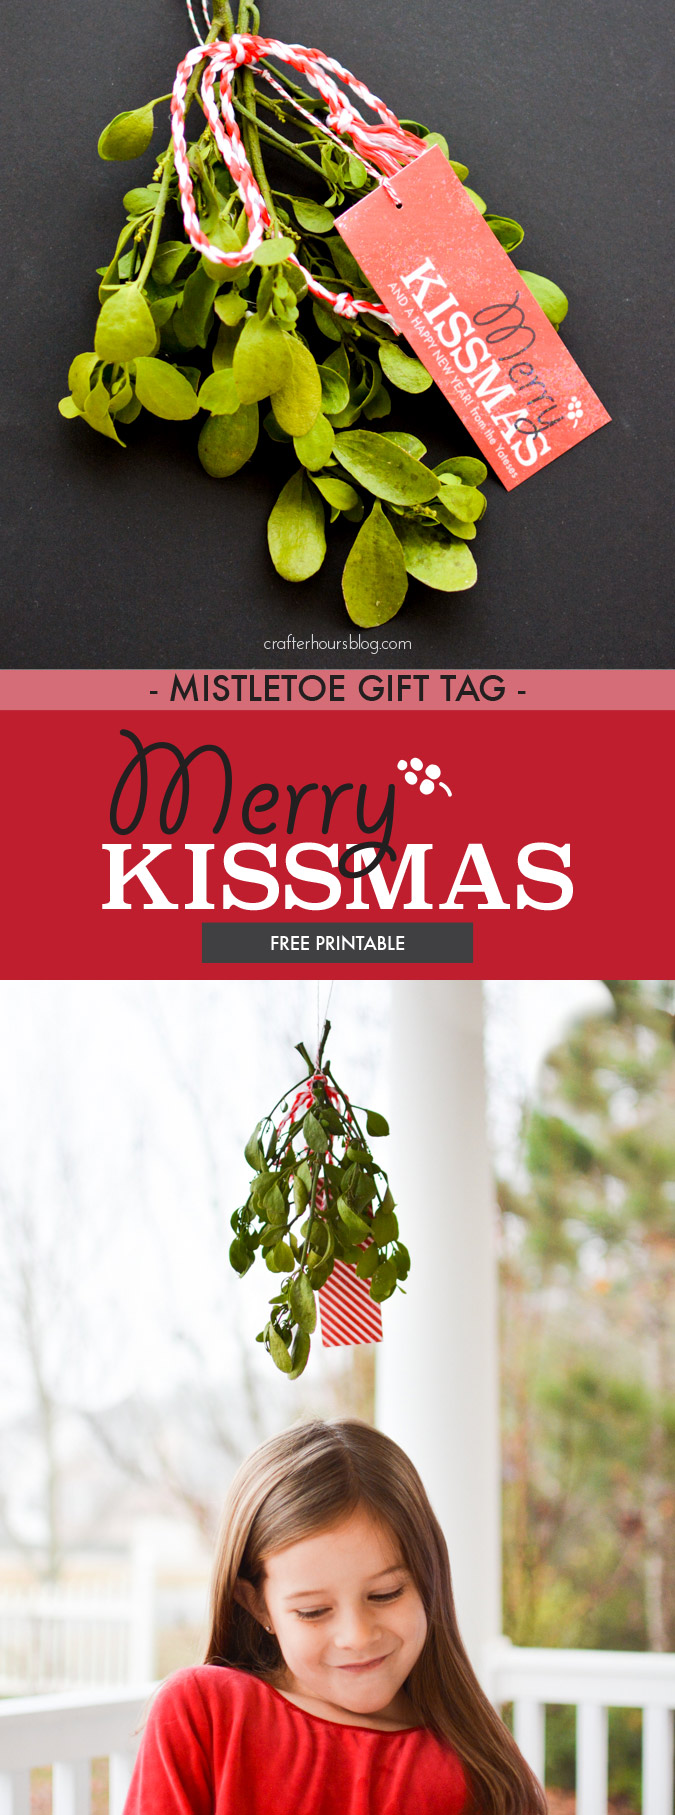 Merry-Kissmas-Mistletoe-Printable- crafterhours